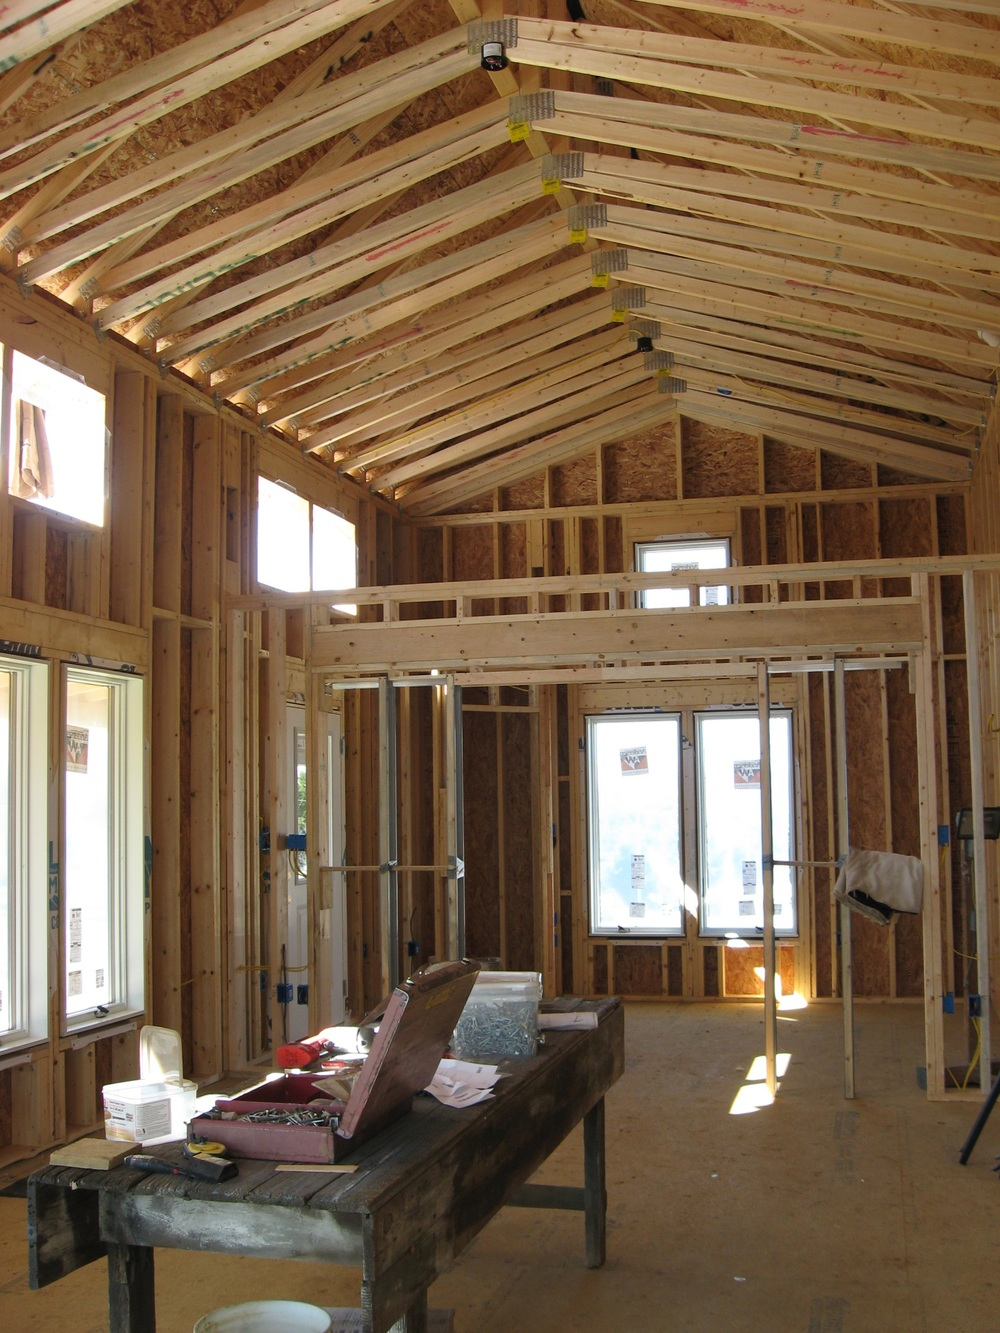 During:  even though the home's profile had to be kept modest so as not to dominate the daughter's house behind, my client still wanted high ceilings and light.  The awning windows are above the outside porch roof, and the wall between the Great Room and the Study/Guest Bedroom does not extend to the ceiling.  This allows you to see the windows at each gable end, from each room.  Nice air flow too.